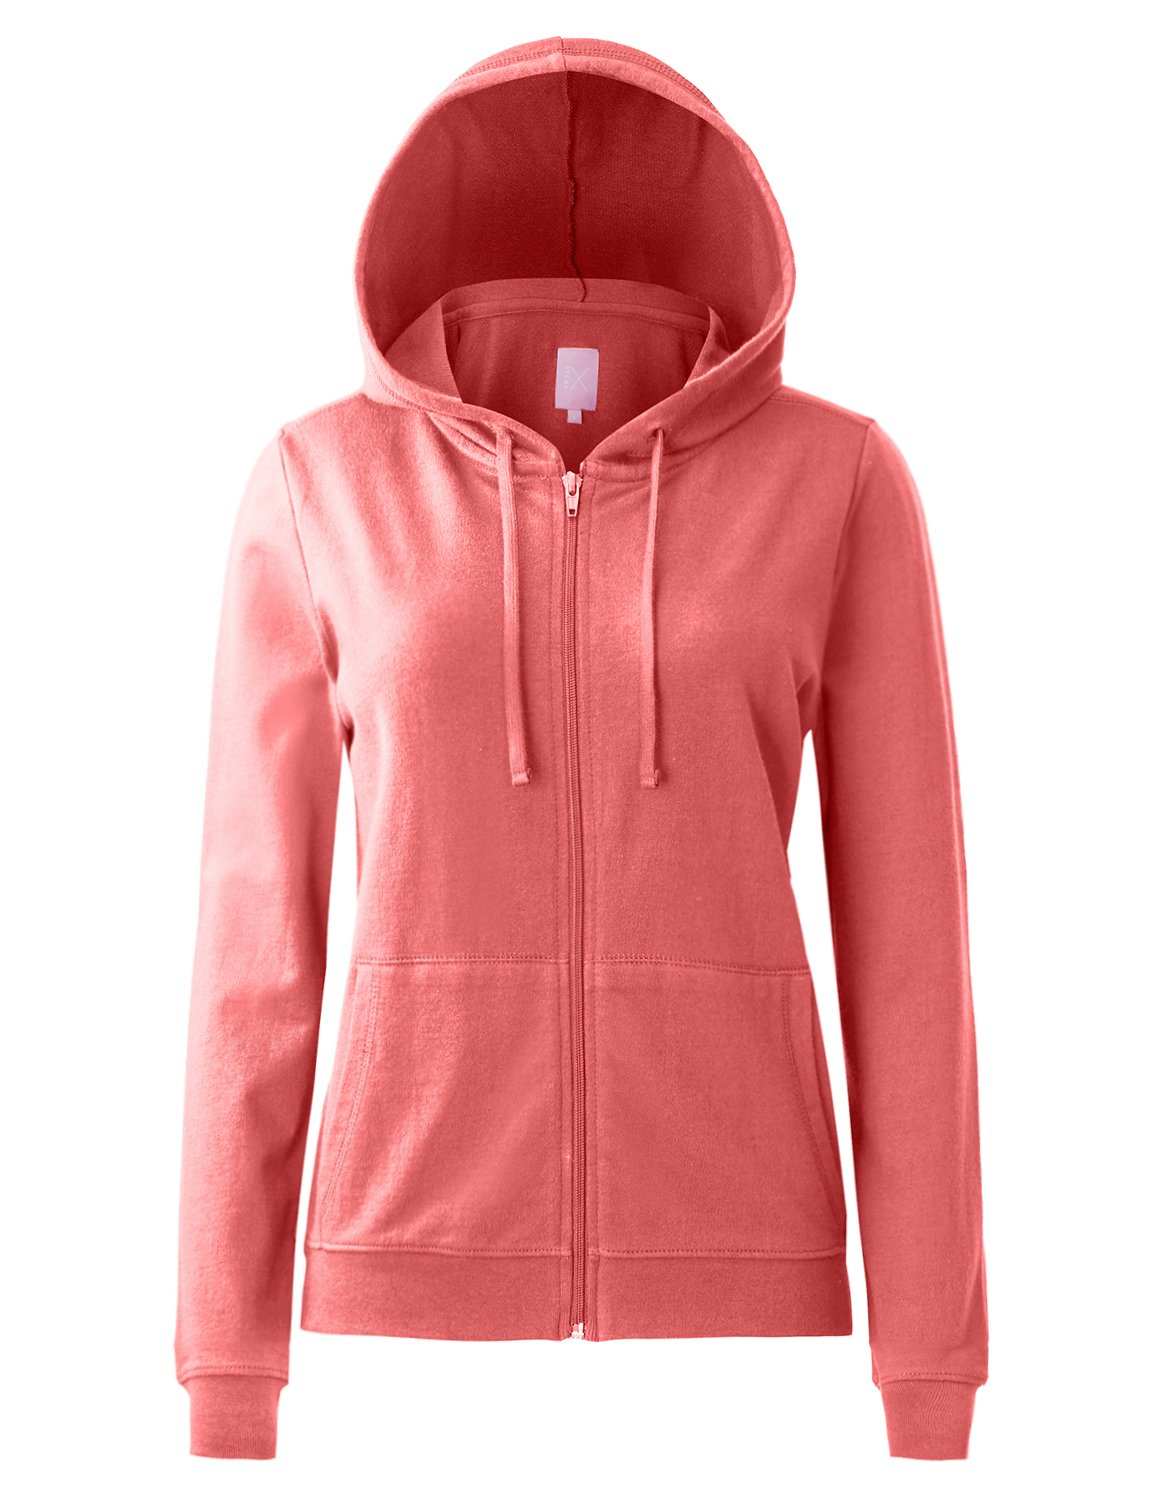 Regna X Women's Long Sleeve Knitted Casual Cotton Zip up Hoodie Jacket Coral L